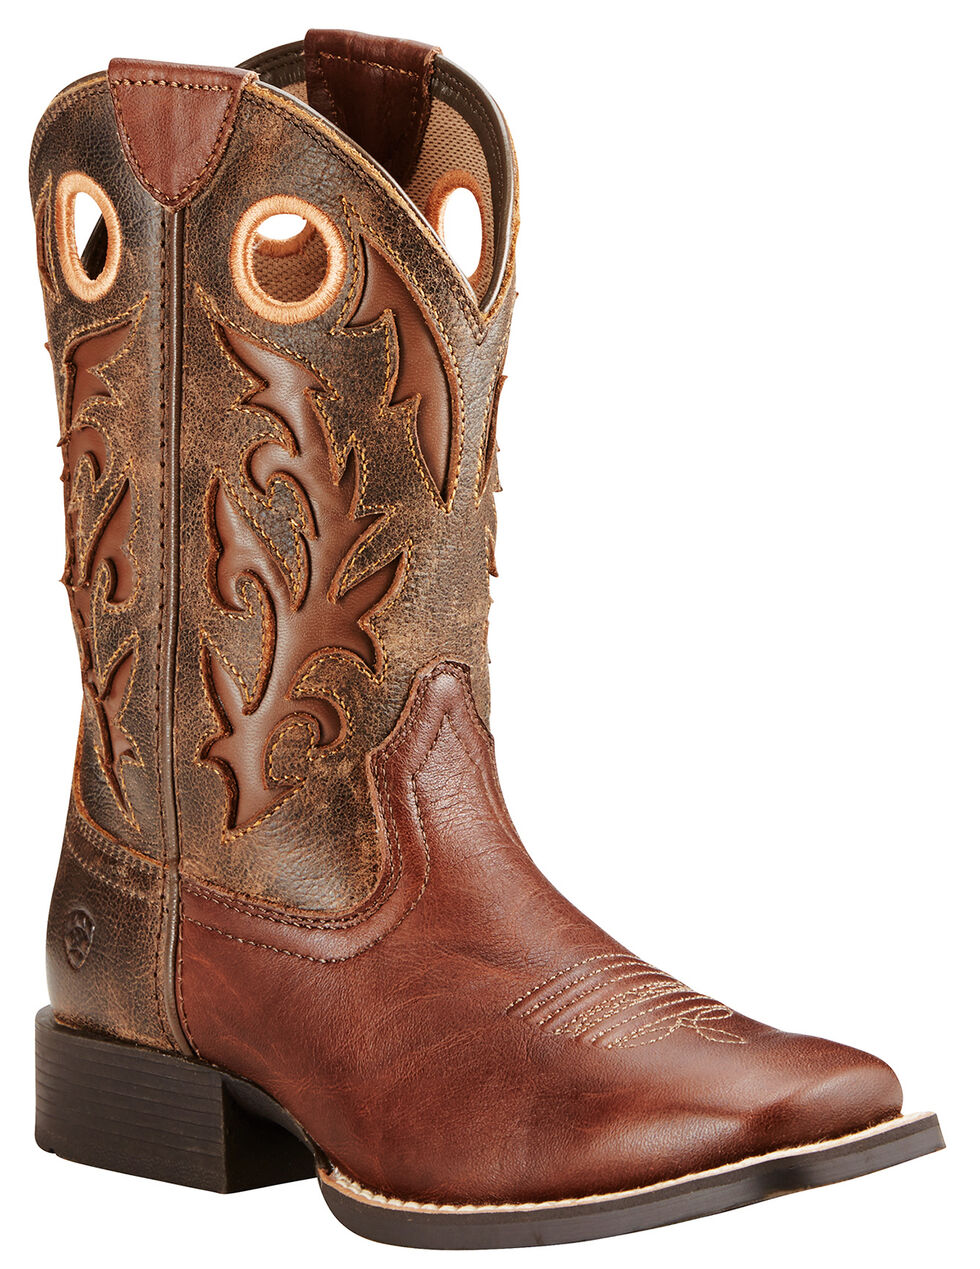 Ariat Boys' Brown Barstow Boots - Wide Square Toe, , hi-res